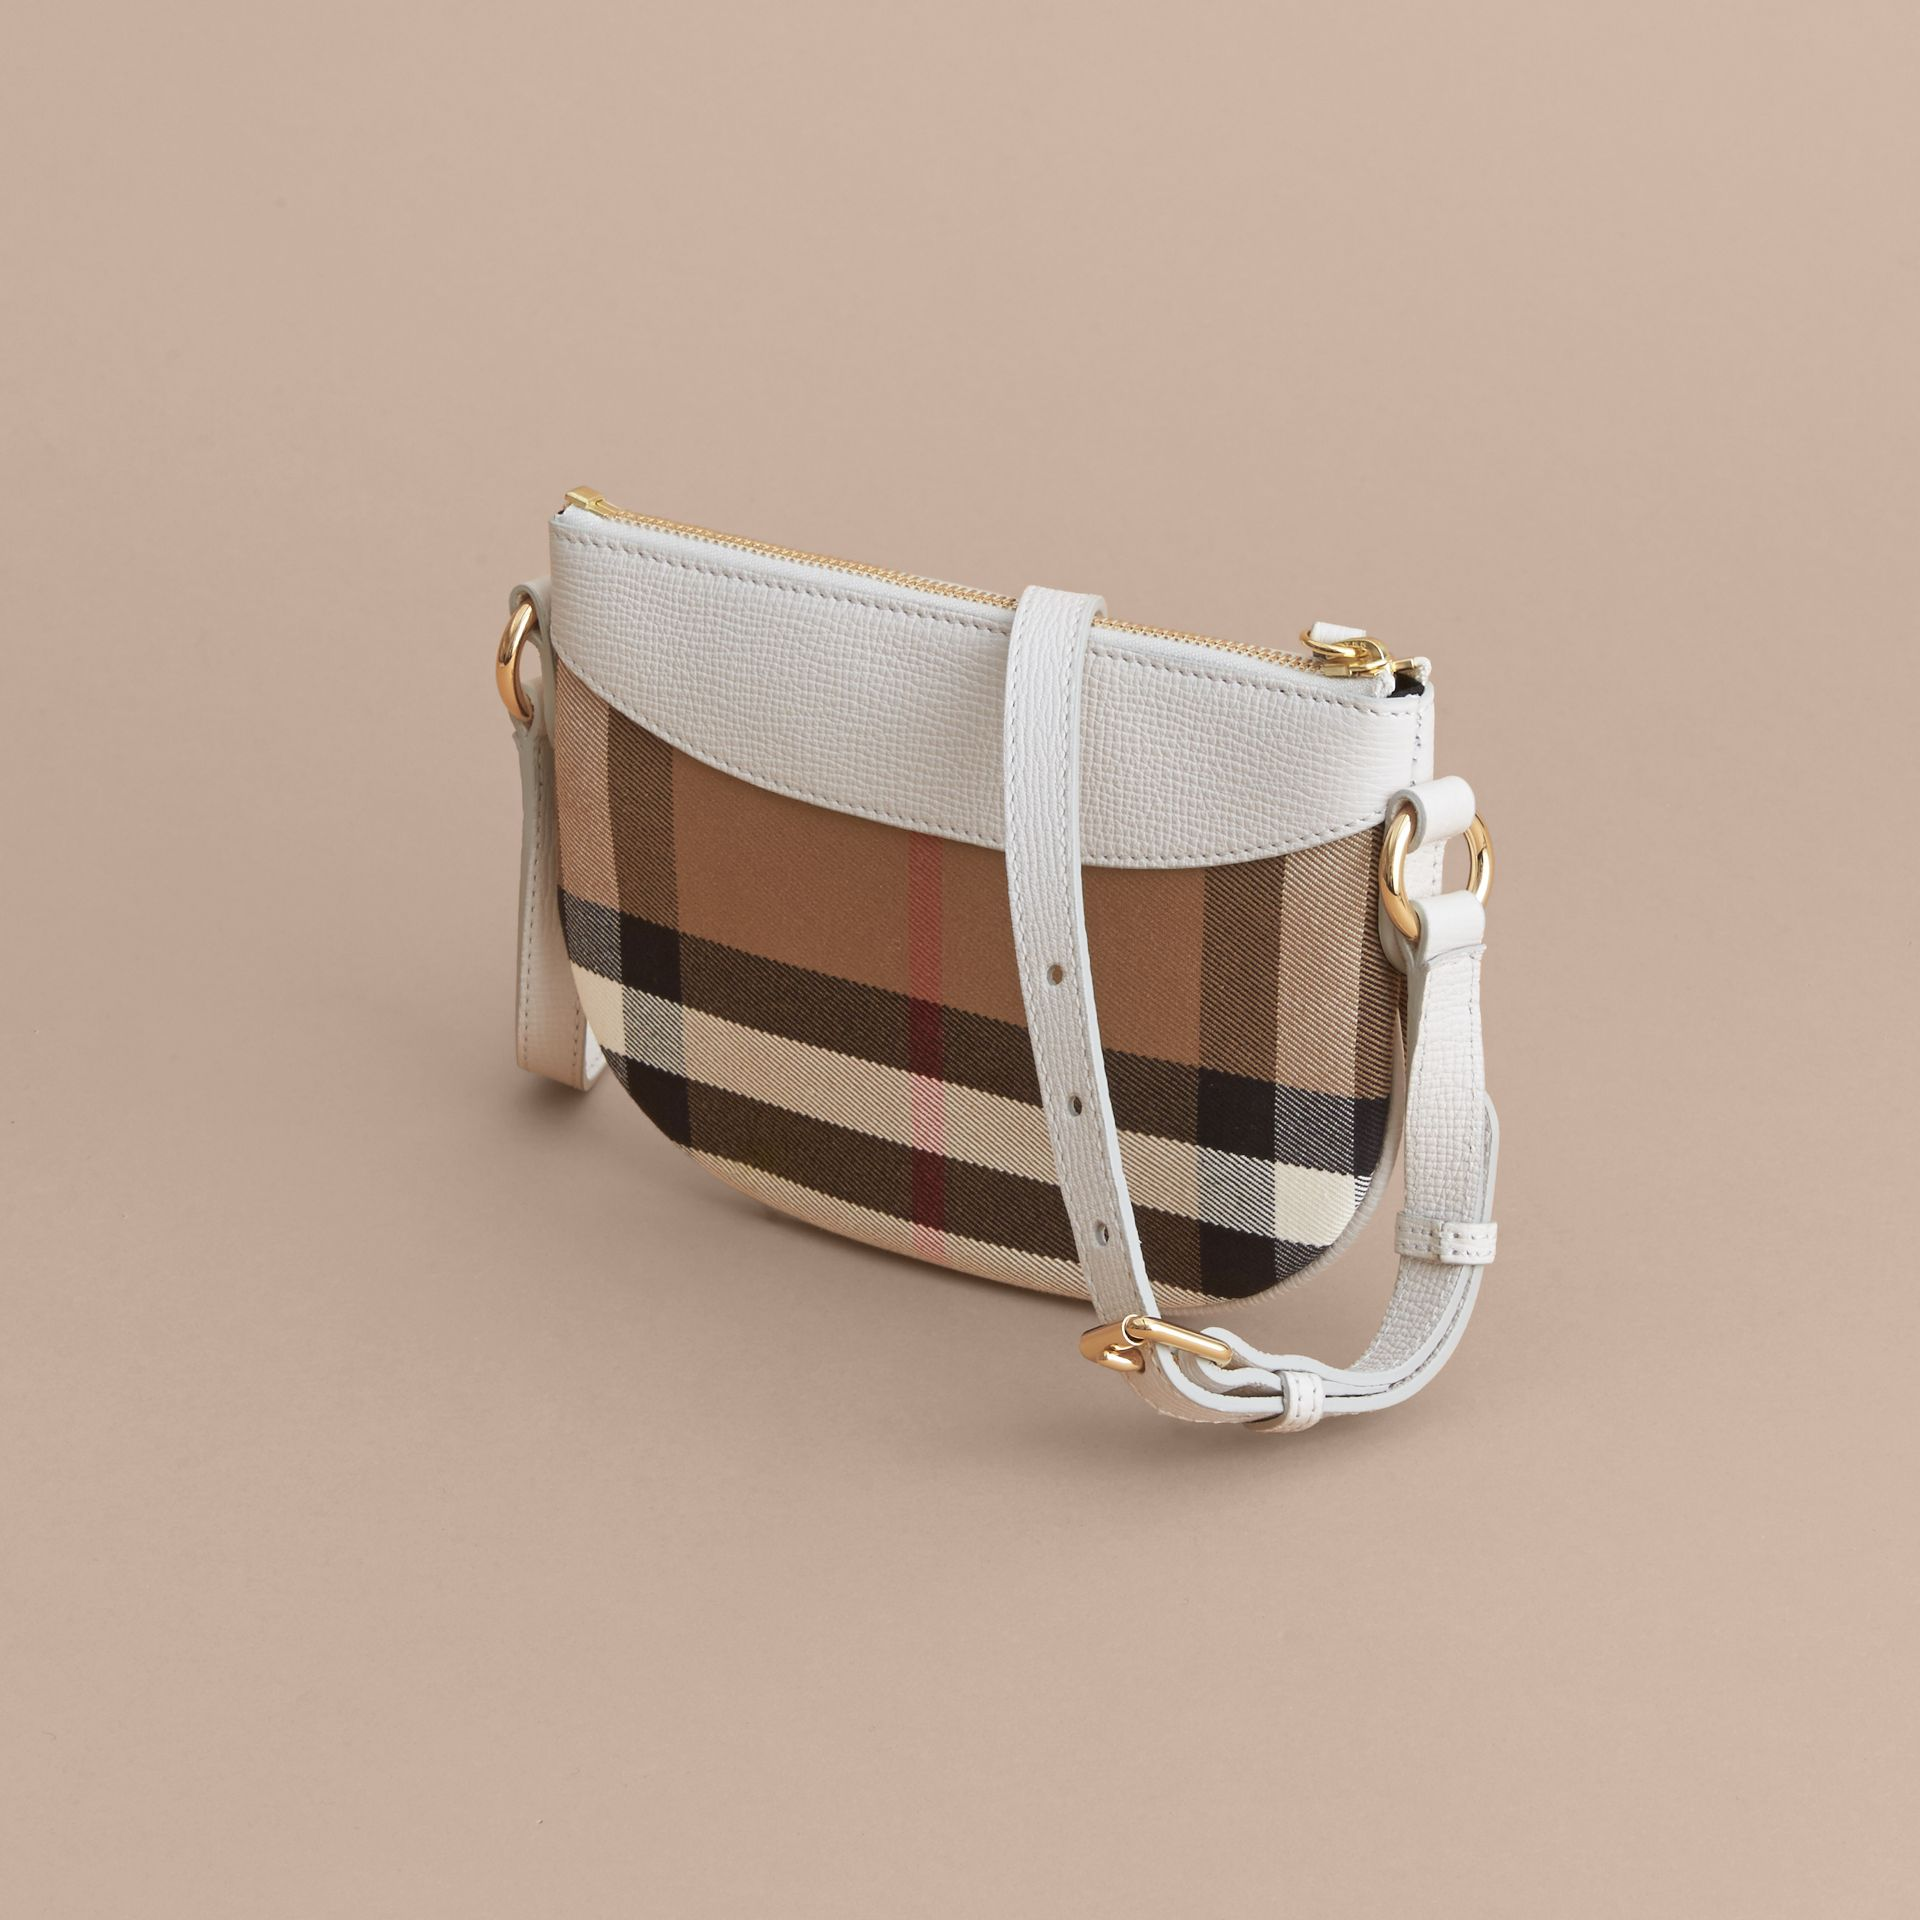 House Check and Leather Crossbody Bag in Natural | Burberry - gallery image 3